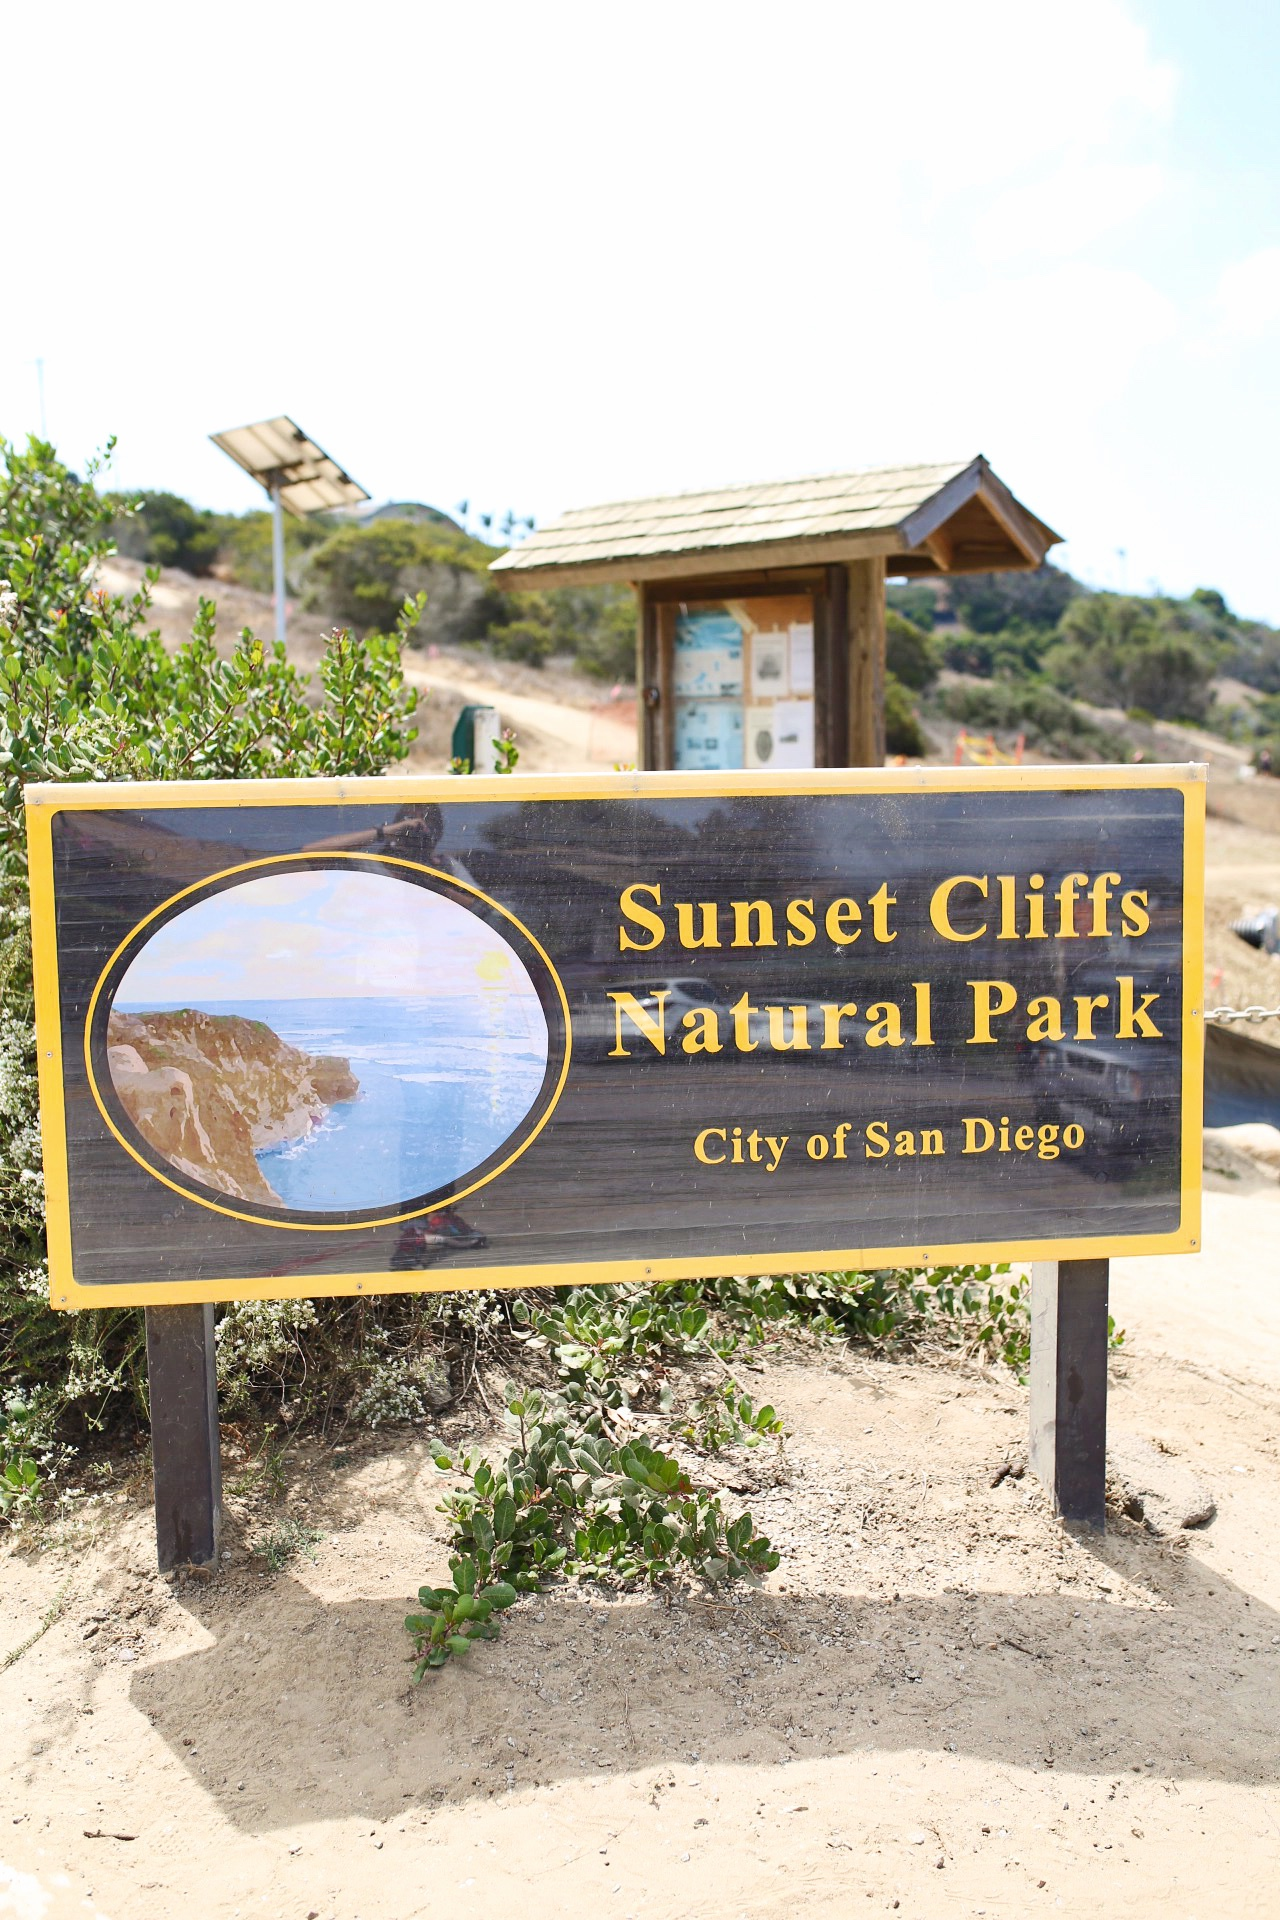 The Ultimate Weekend in San Diego, California - Sunset Cliffs